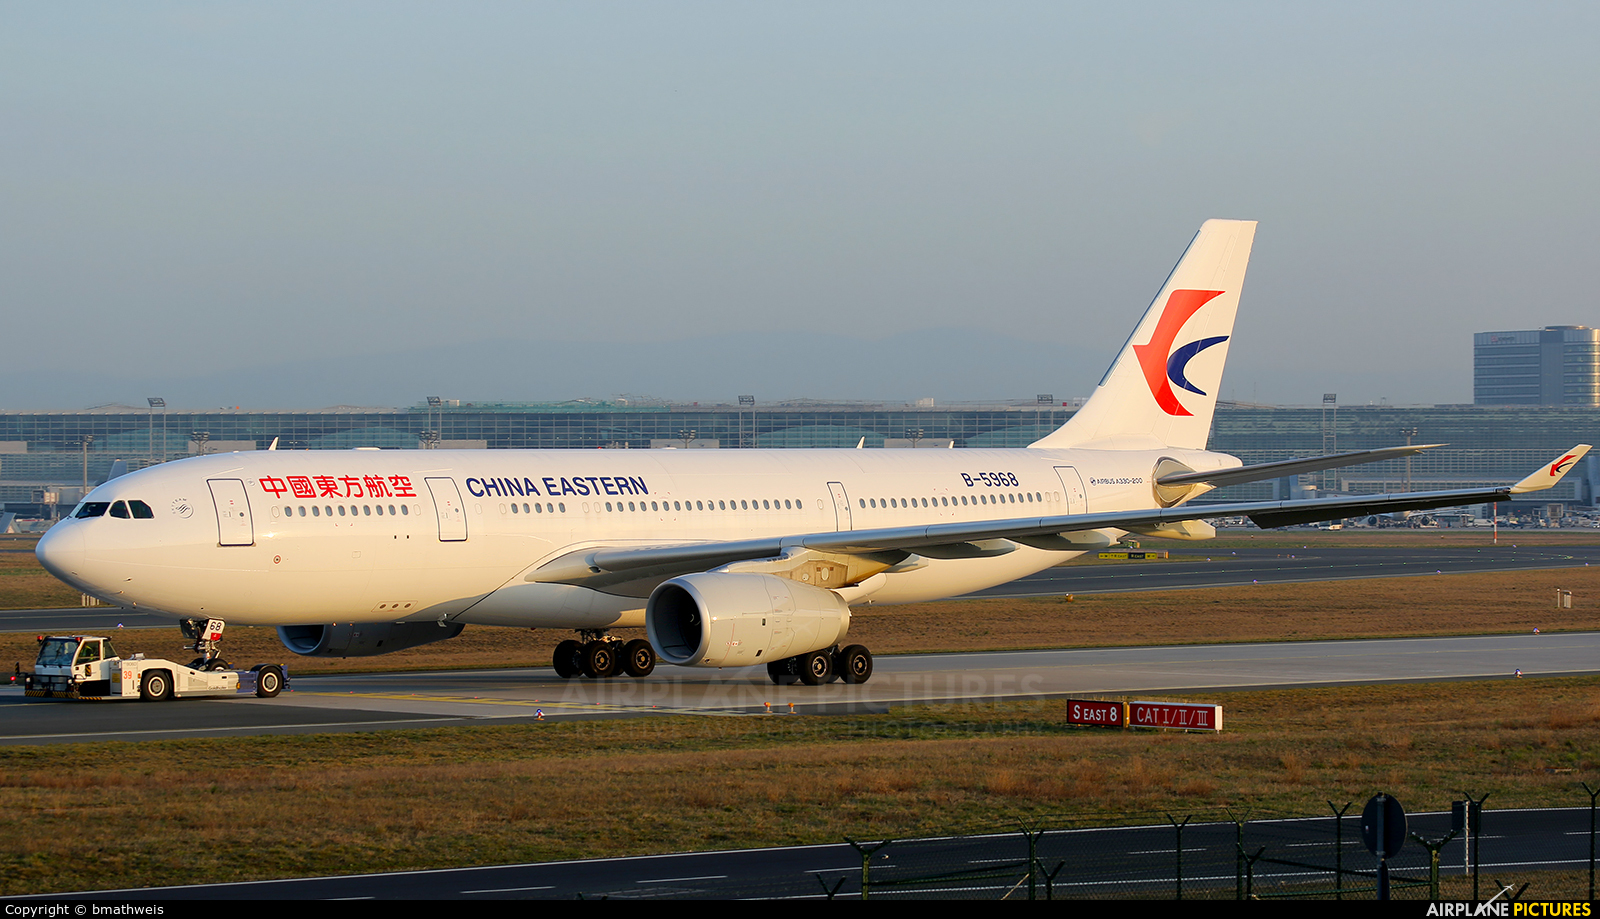 B 5968 china eastern airlines airbus a330 200 at - China eastern airlines sydney office ...